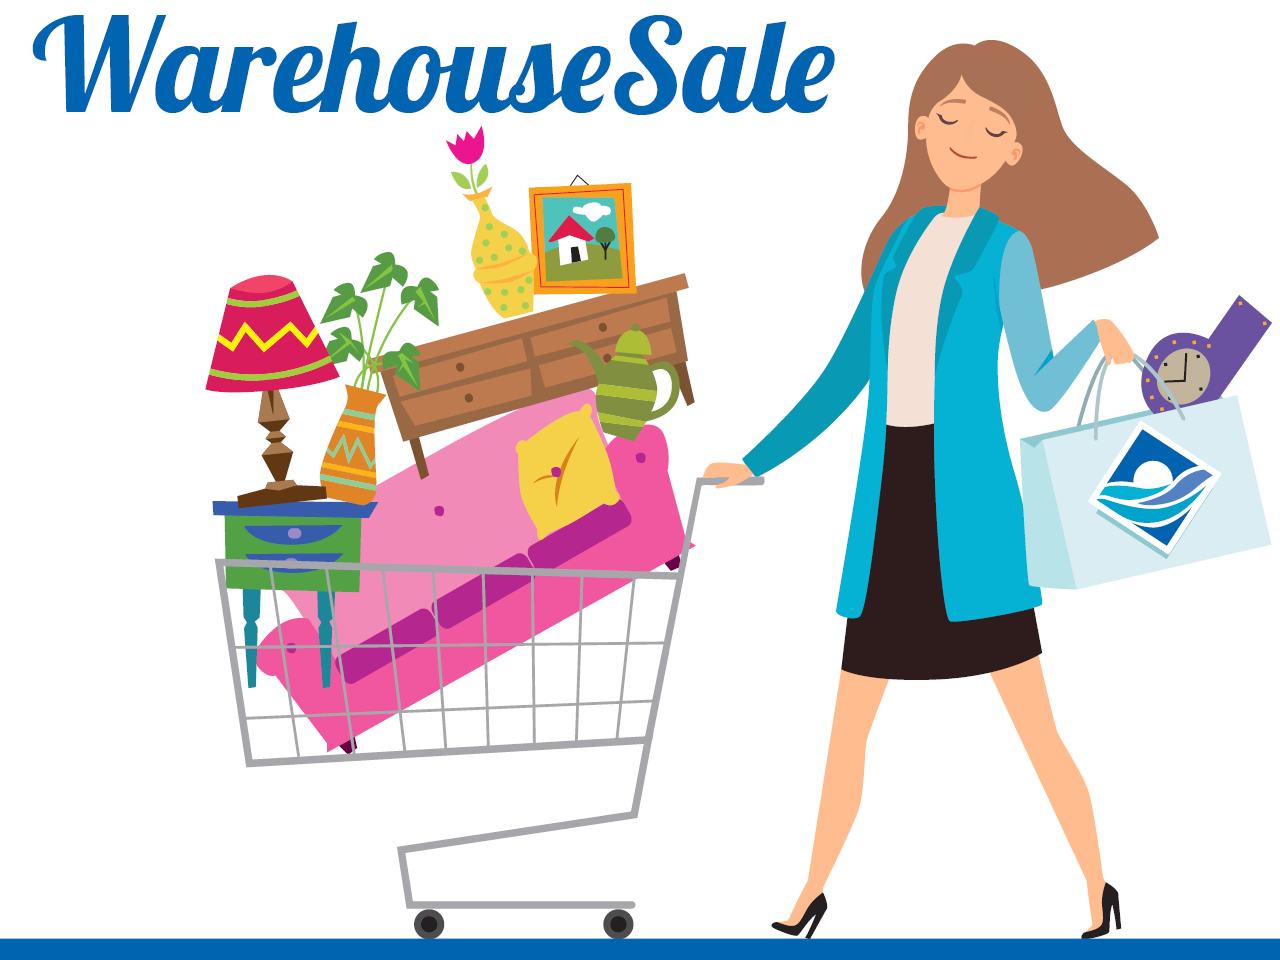 Warehouse-Sale-Site-Image-2020.png